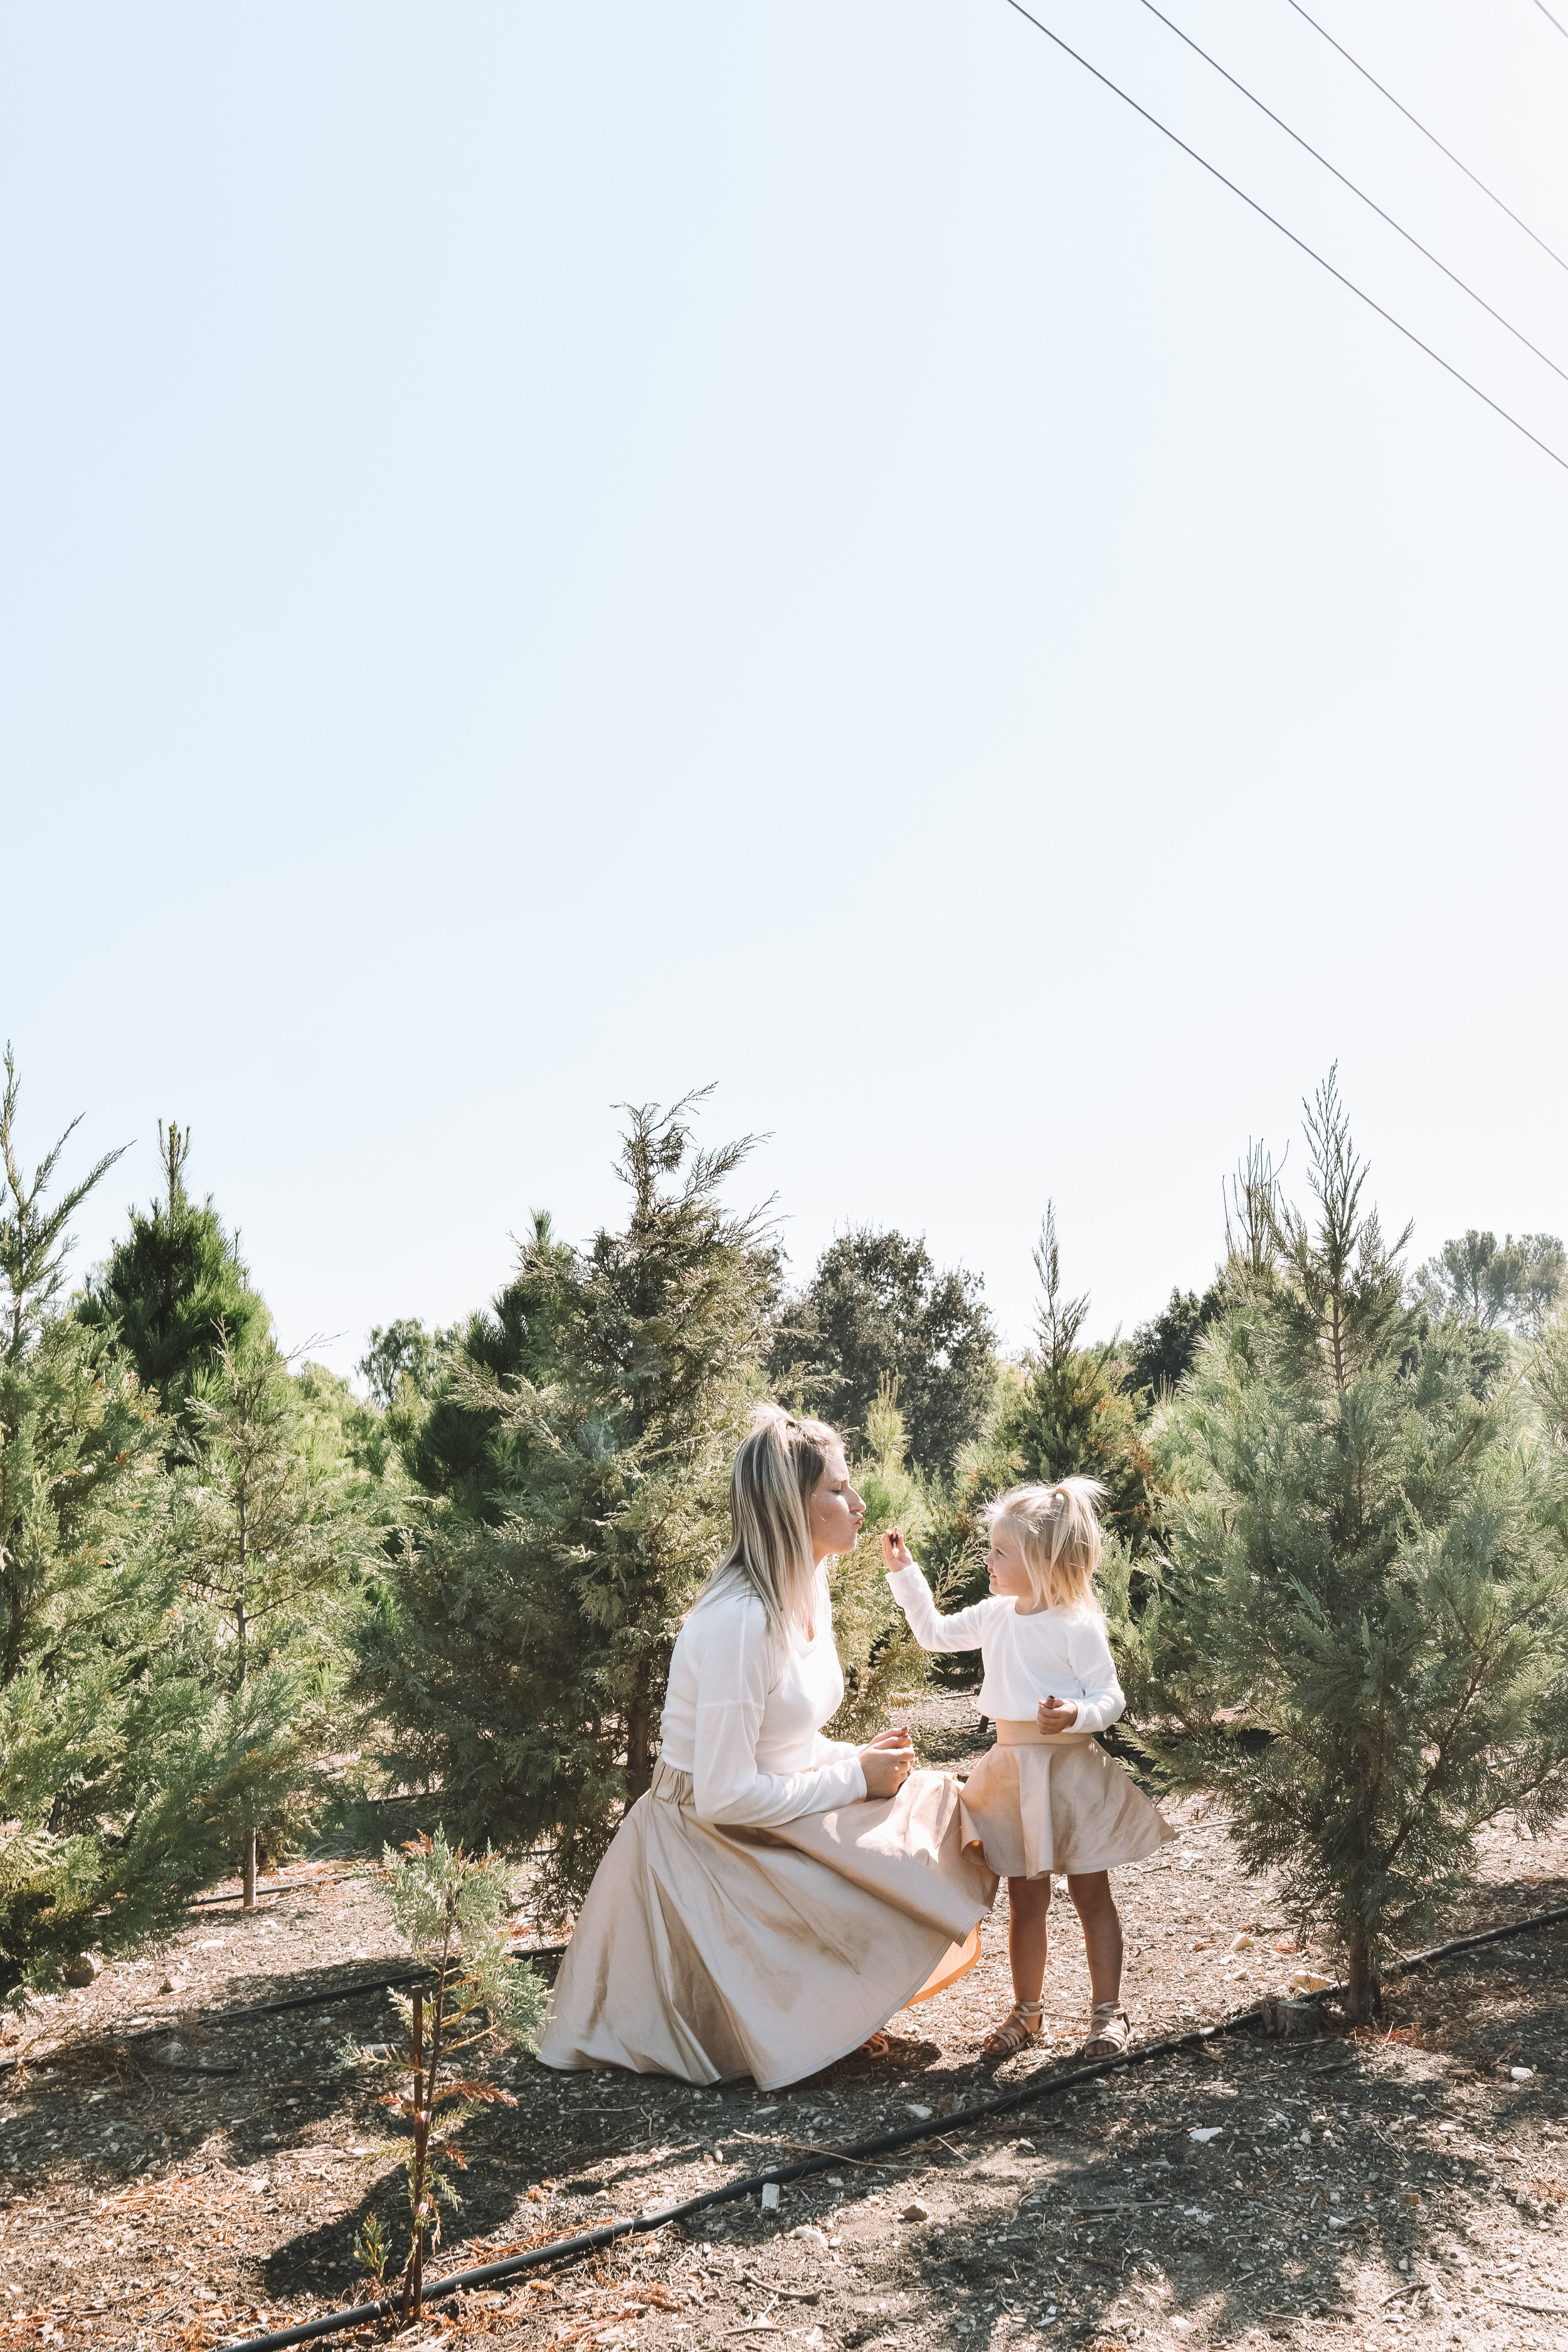 Matching Mommy and Me Holiday Outfits Skirts - The Overwhelmed Mommy Blogger